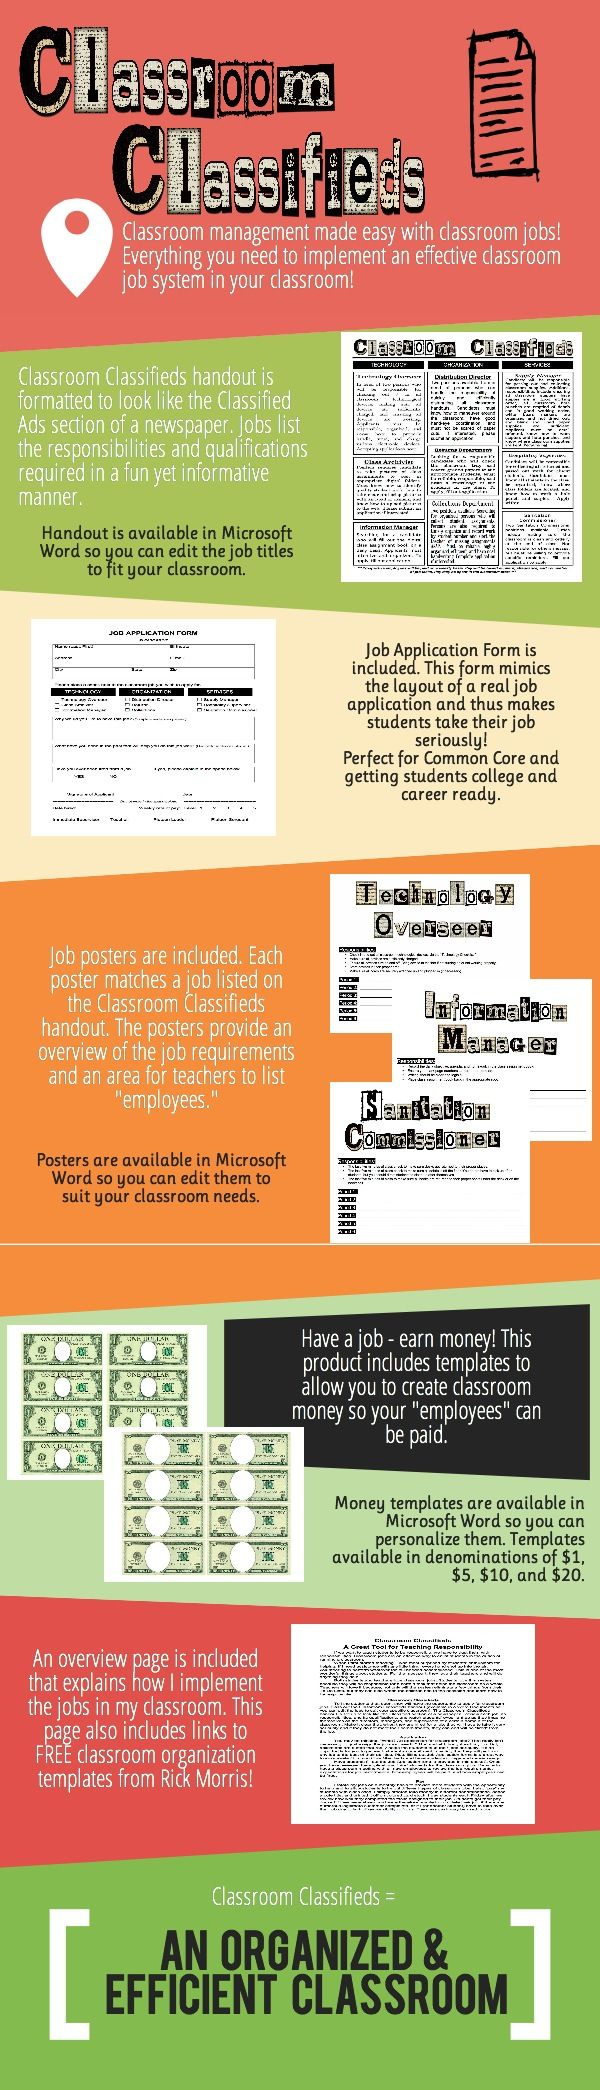 Classroom Classifieds  A fun way to introduce classroom jobs into upper elementary and middle school classrooms. Includes a Classified Ads job page, job application, job posters, and editable class currency. Adding this level of organized responsibility is great classroom management tool!